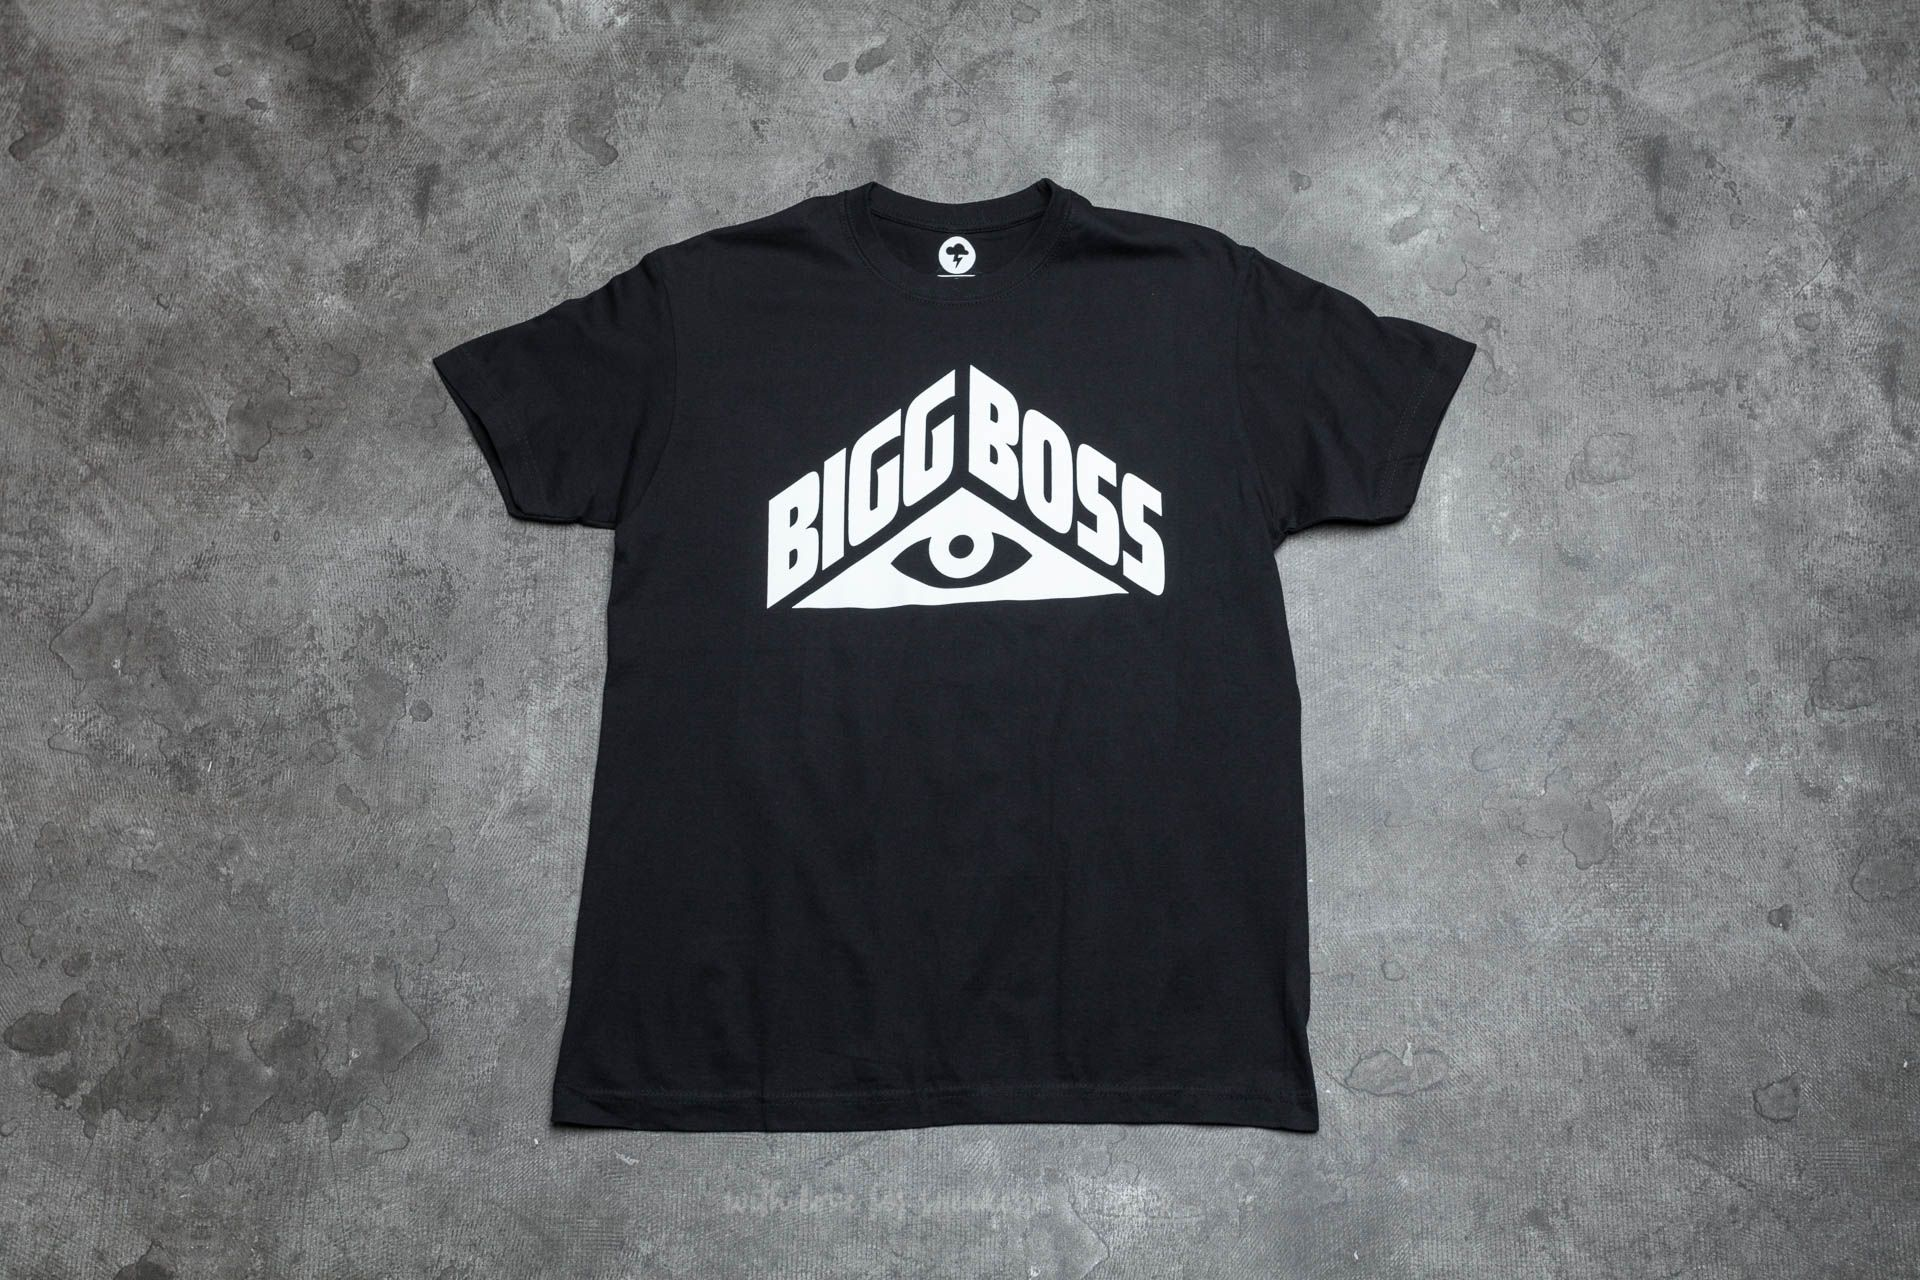 BIGG BOSS Eye T-Shirt Black - 13569